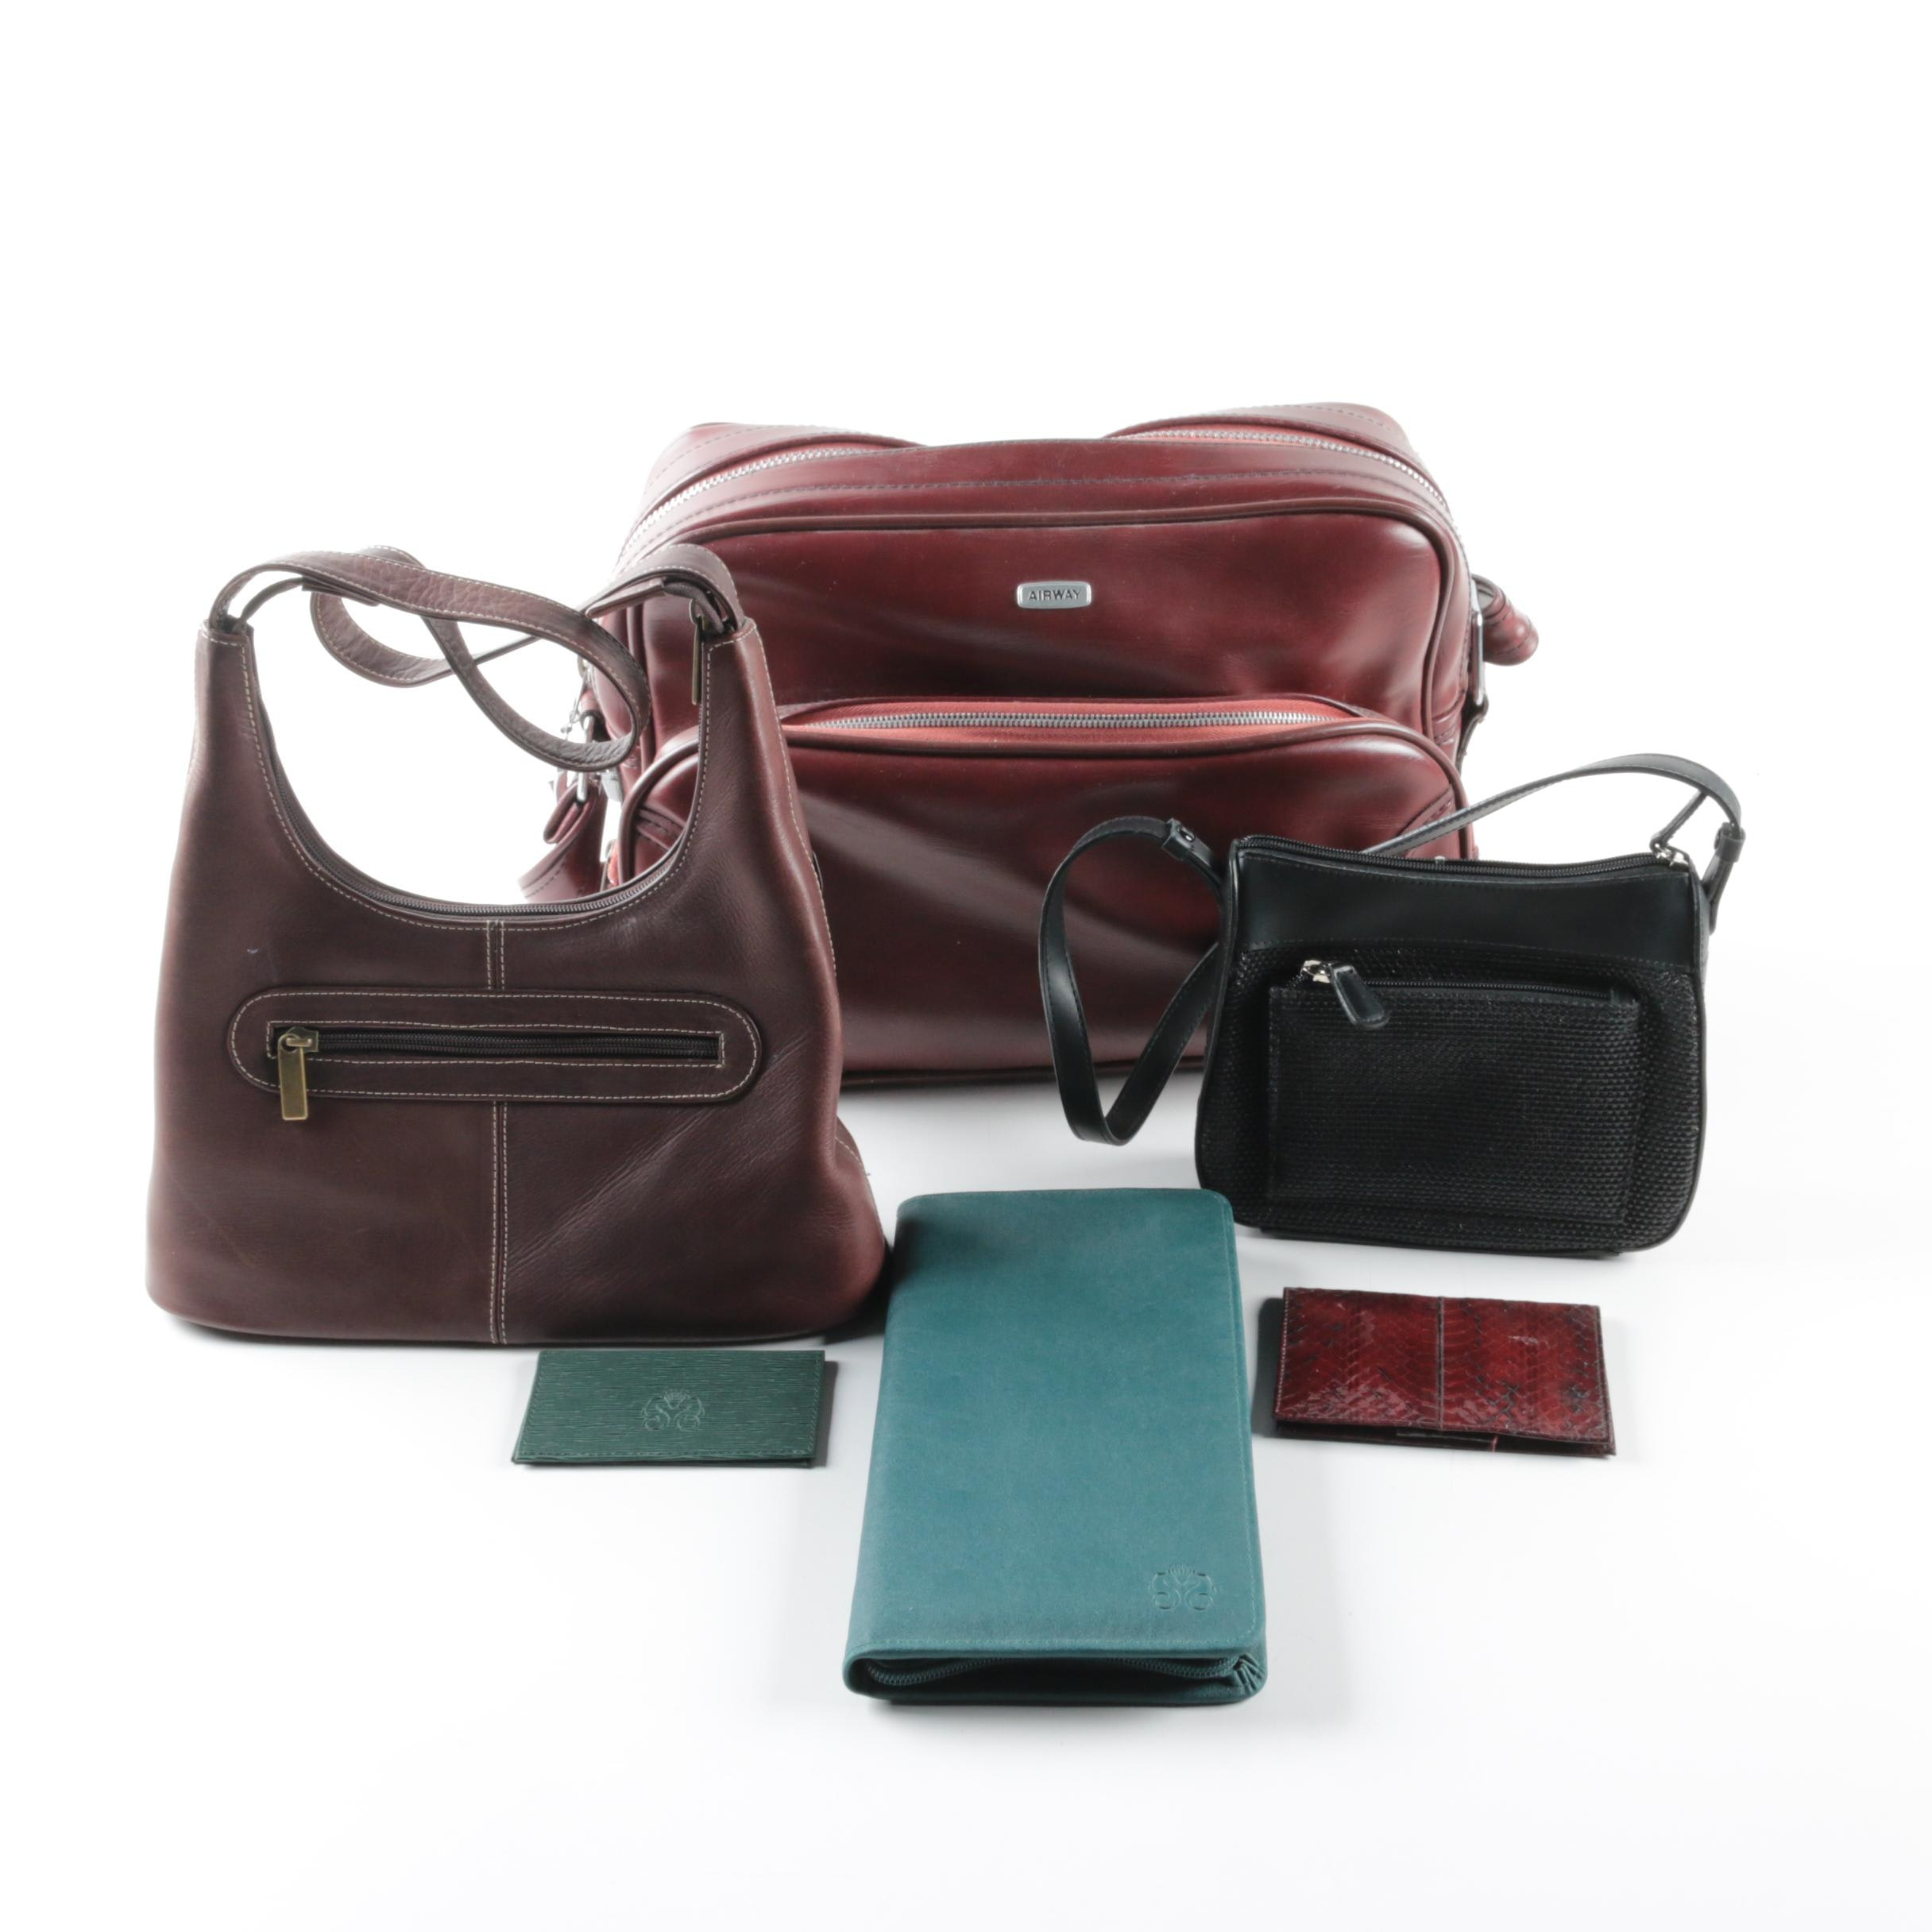 Top Handle Bags and Accessories